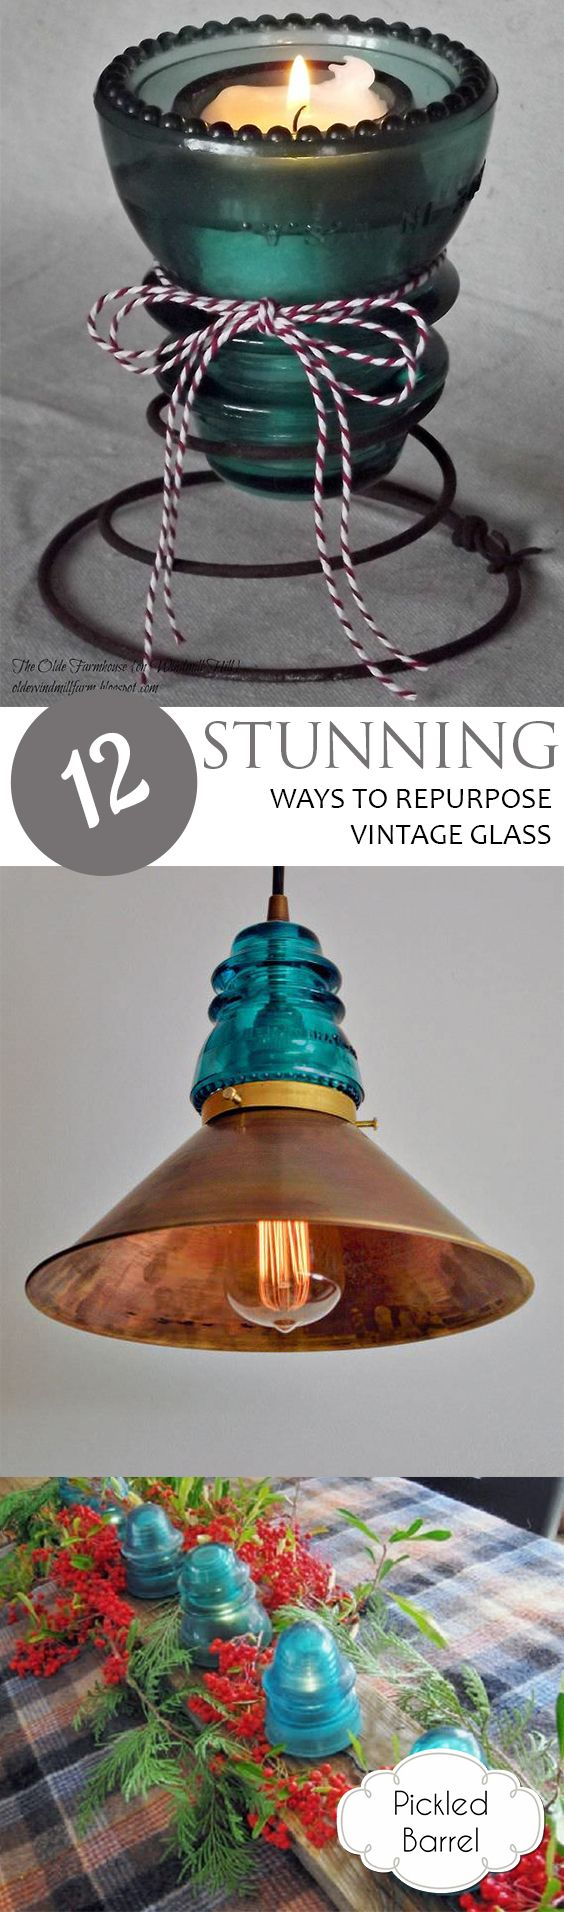 How to Repurpose Class, Lighting, DIY Lighting, Lighting Ideas, Home Lighting Ideas, DIY Lighting for The Home, Rustic Lighting For the Home, Things to Do With Vintage Glass, Popular Pin